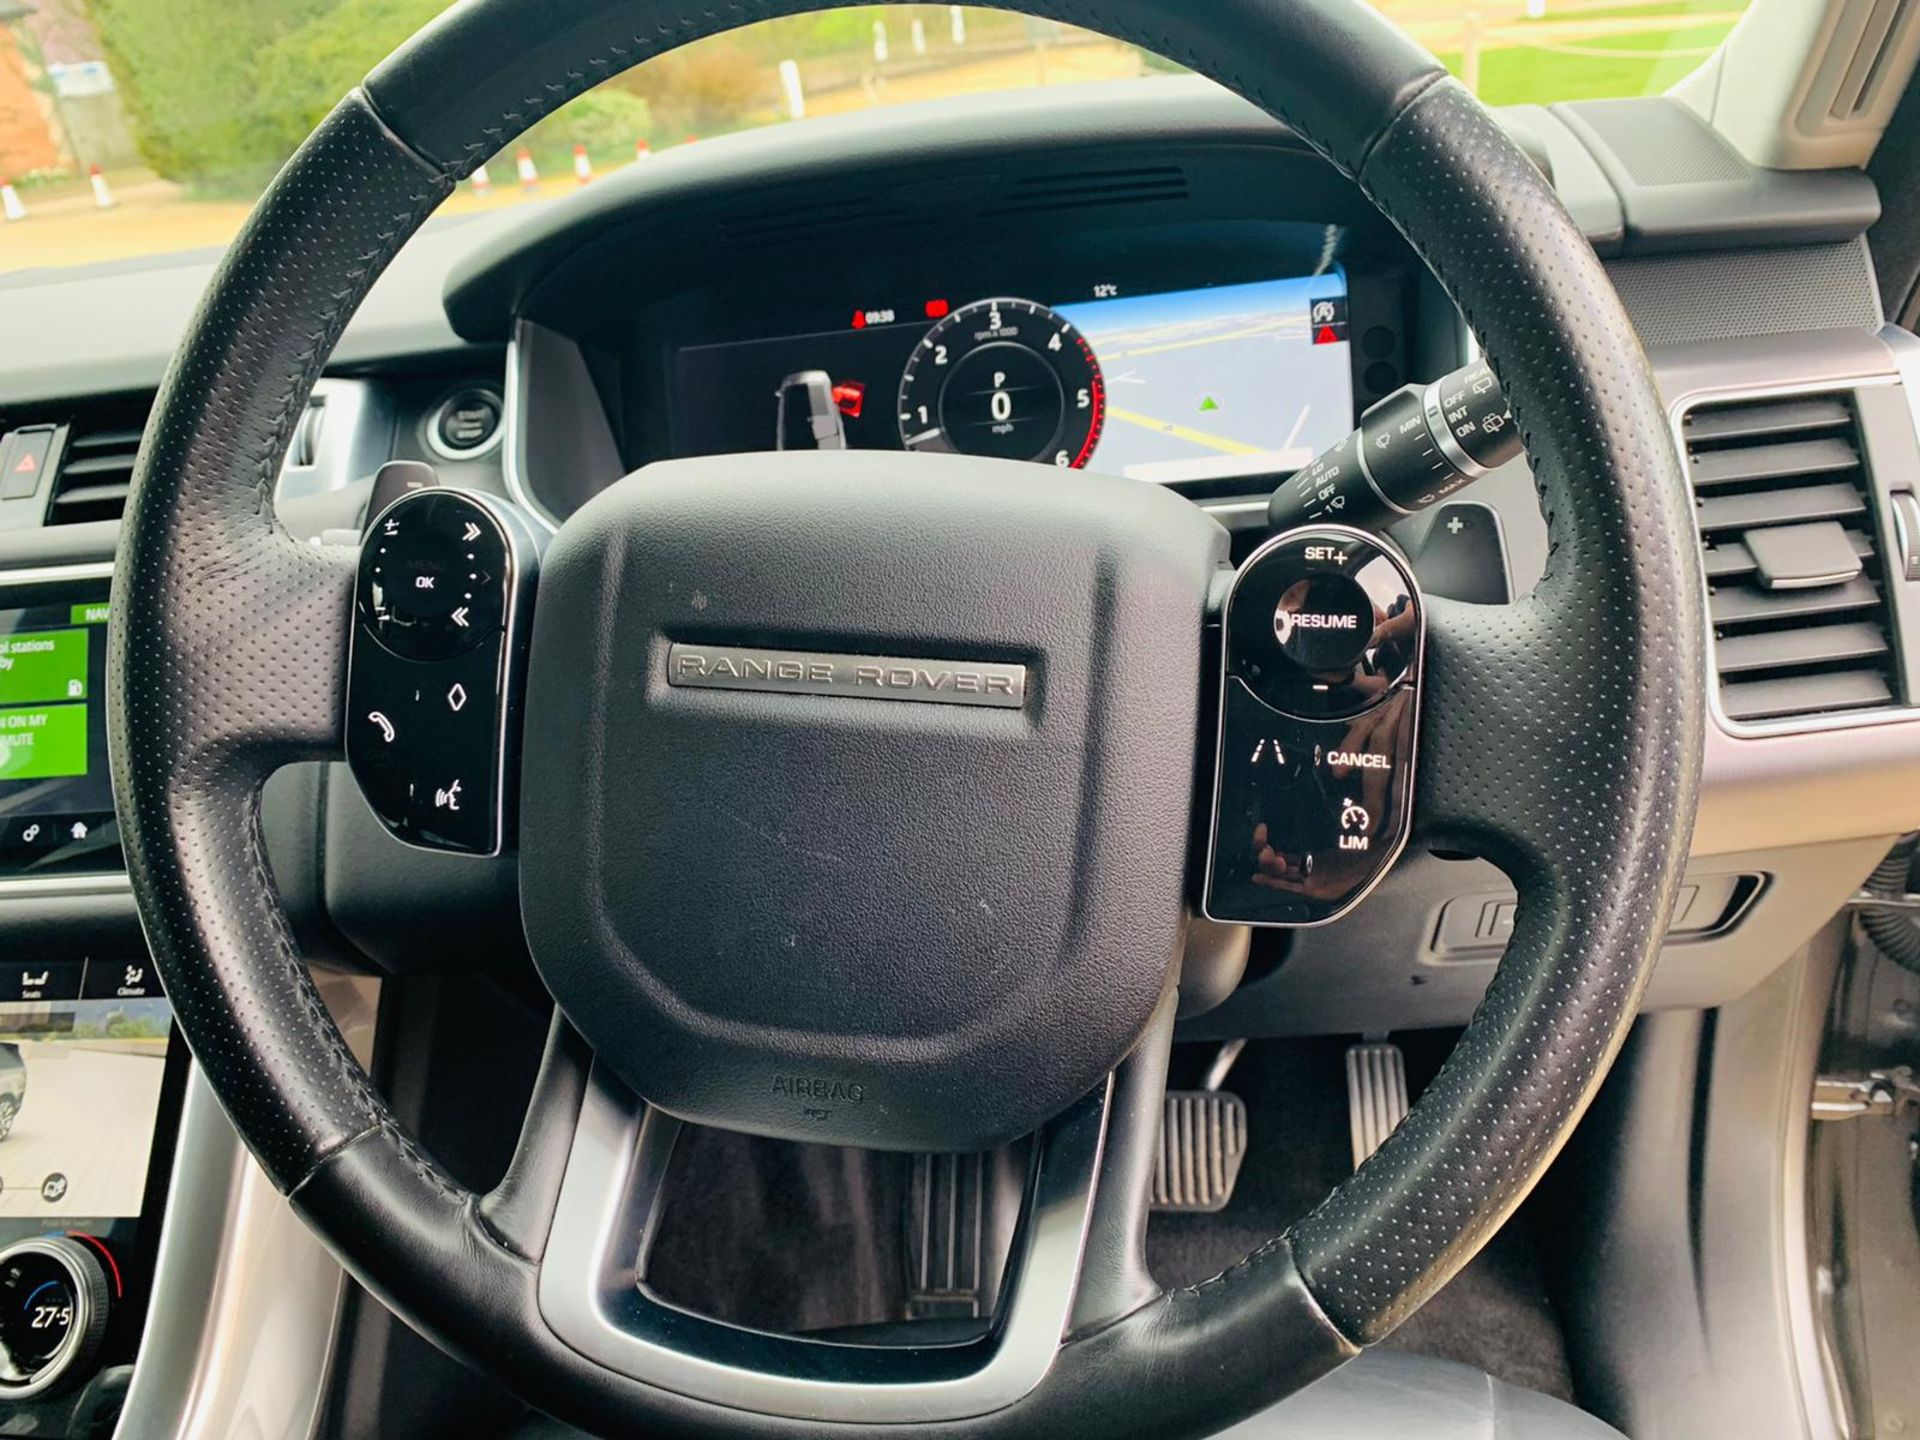 (RESERVE MET) Range Rover Sport 3.0 SDV6 HSE Auto - 2019 - 1 Keeper From New - Virtual Cockpit - - Image 16 of 42